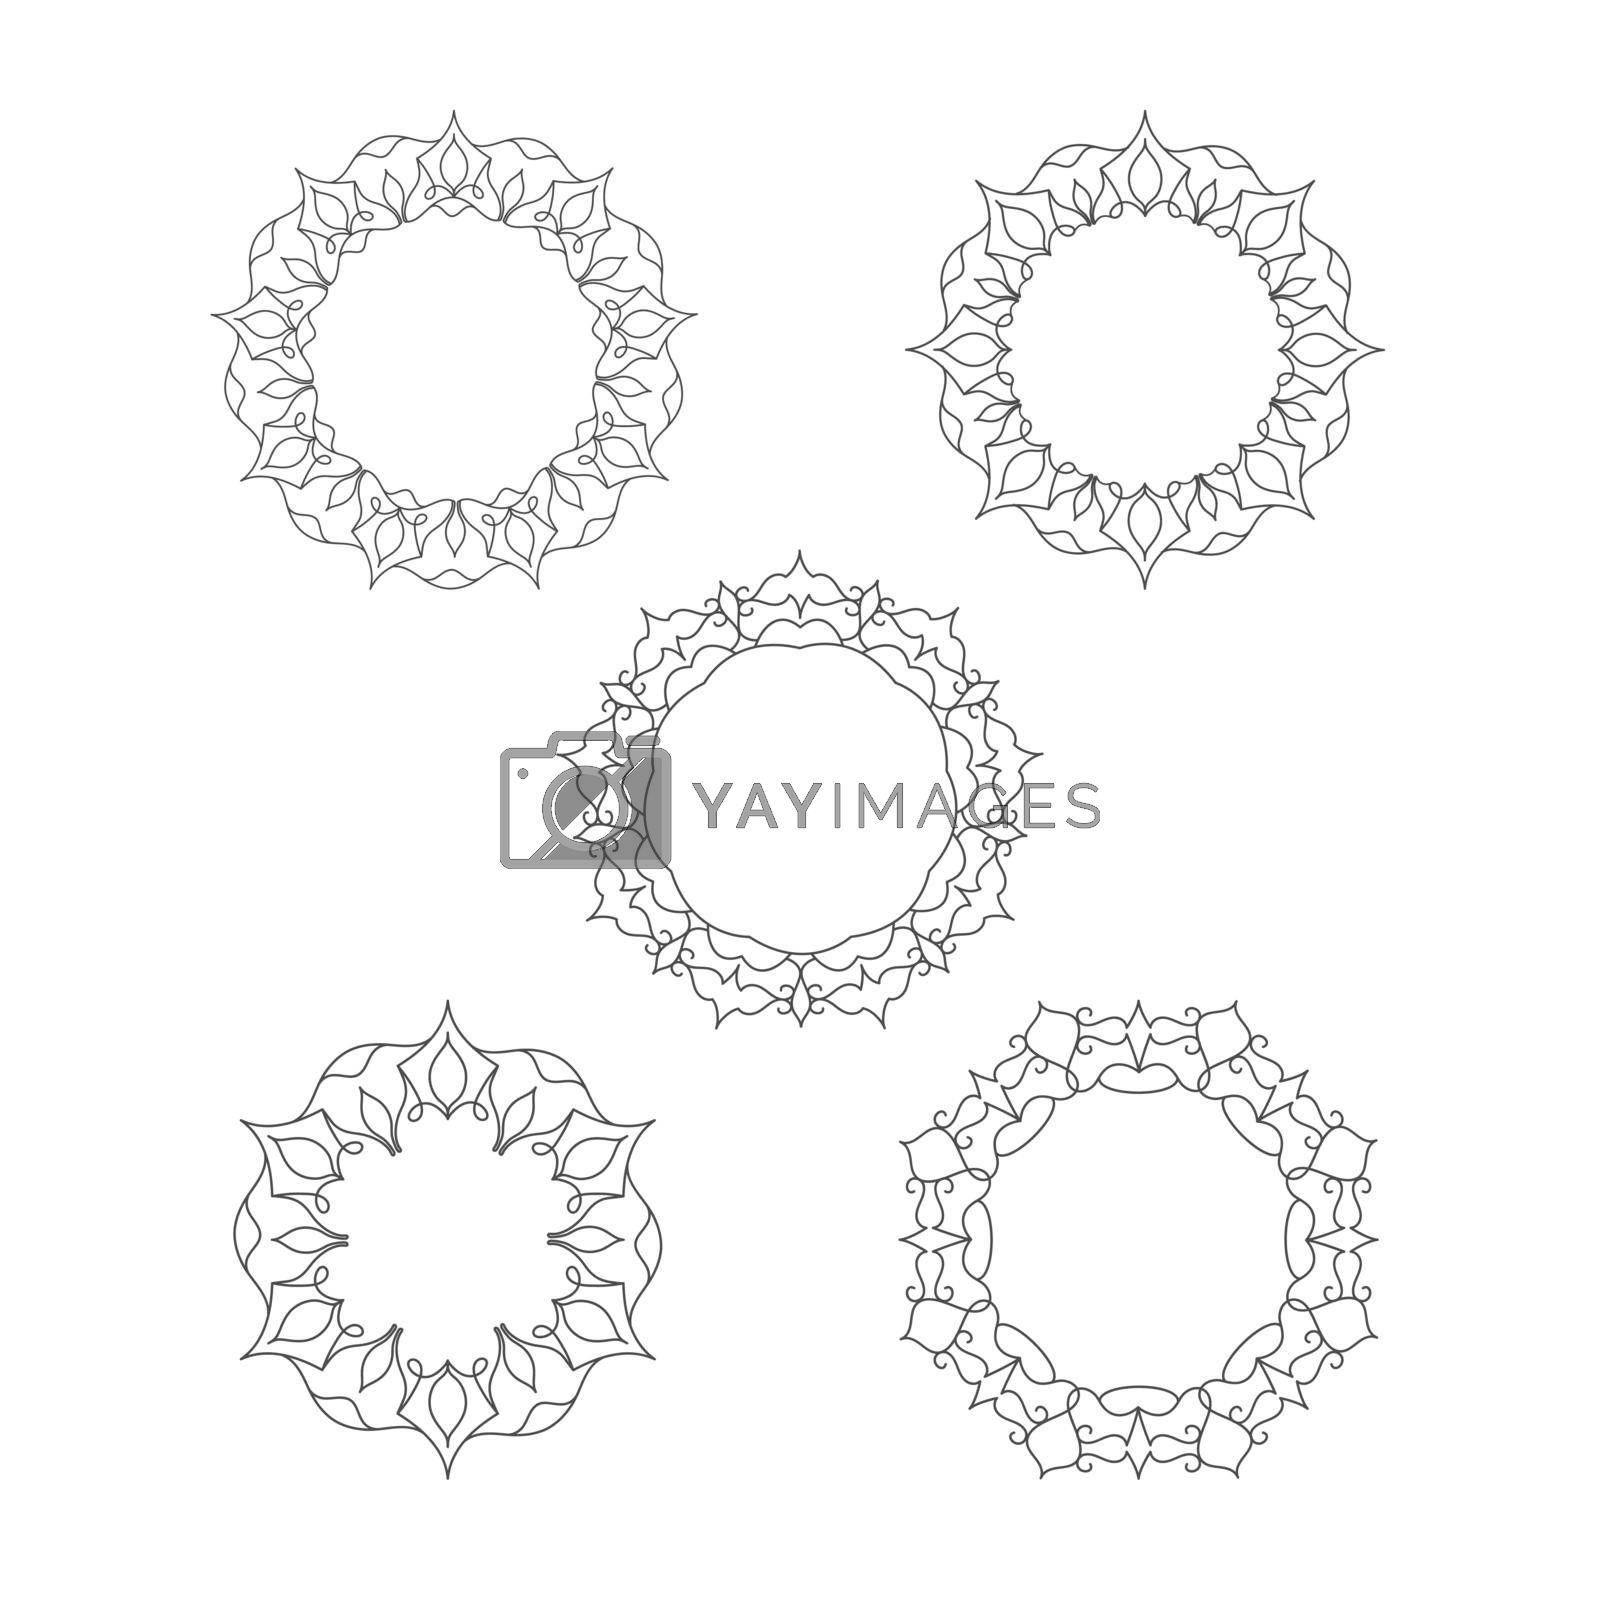 set of decorative patterned frames for photos, illustrations, text, and creative design. Flat style.